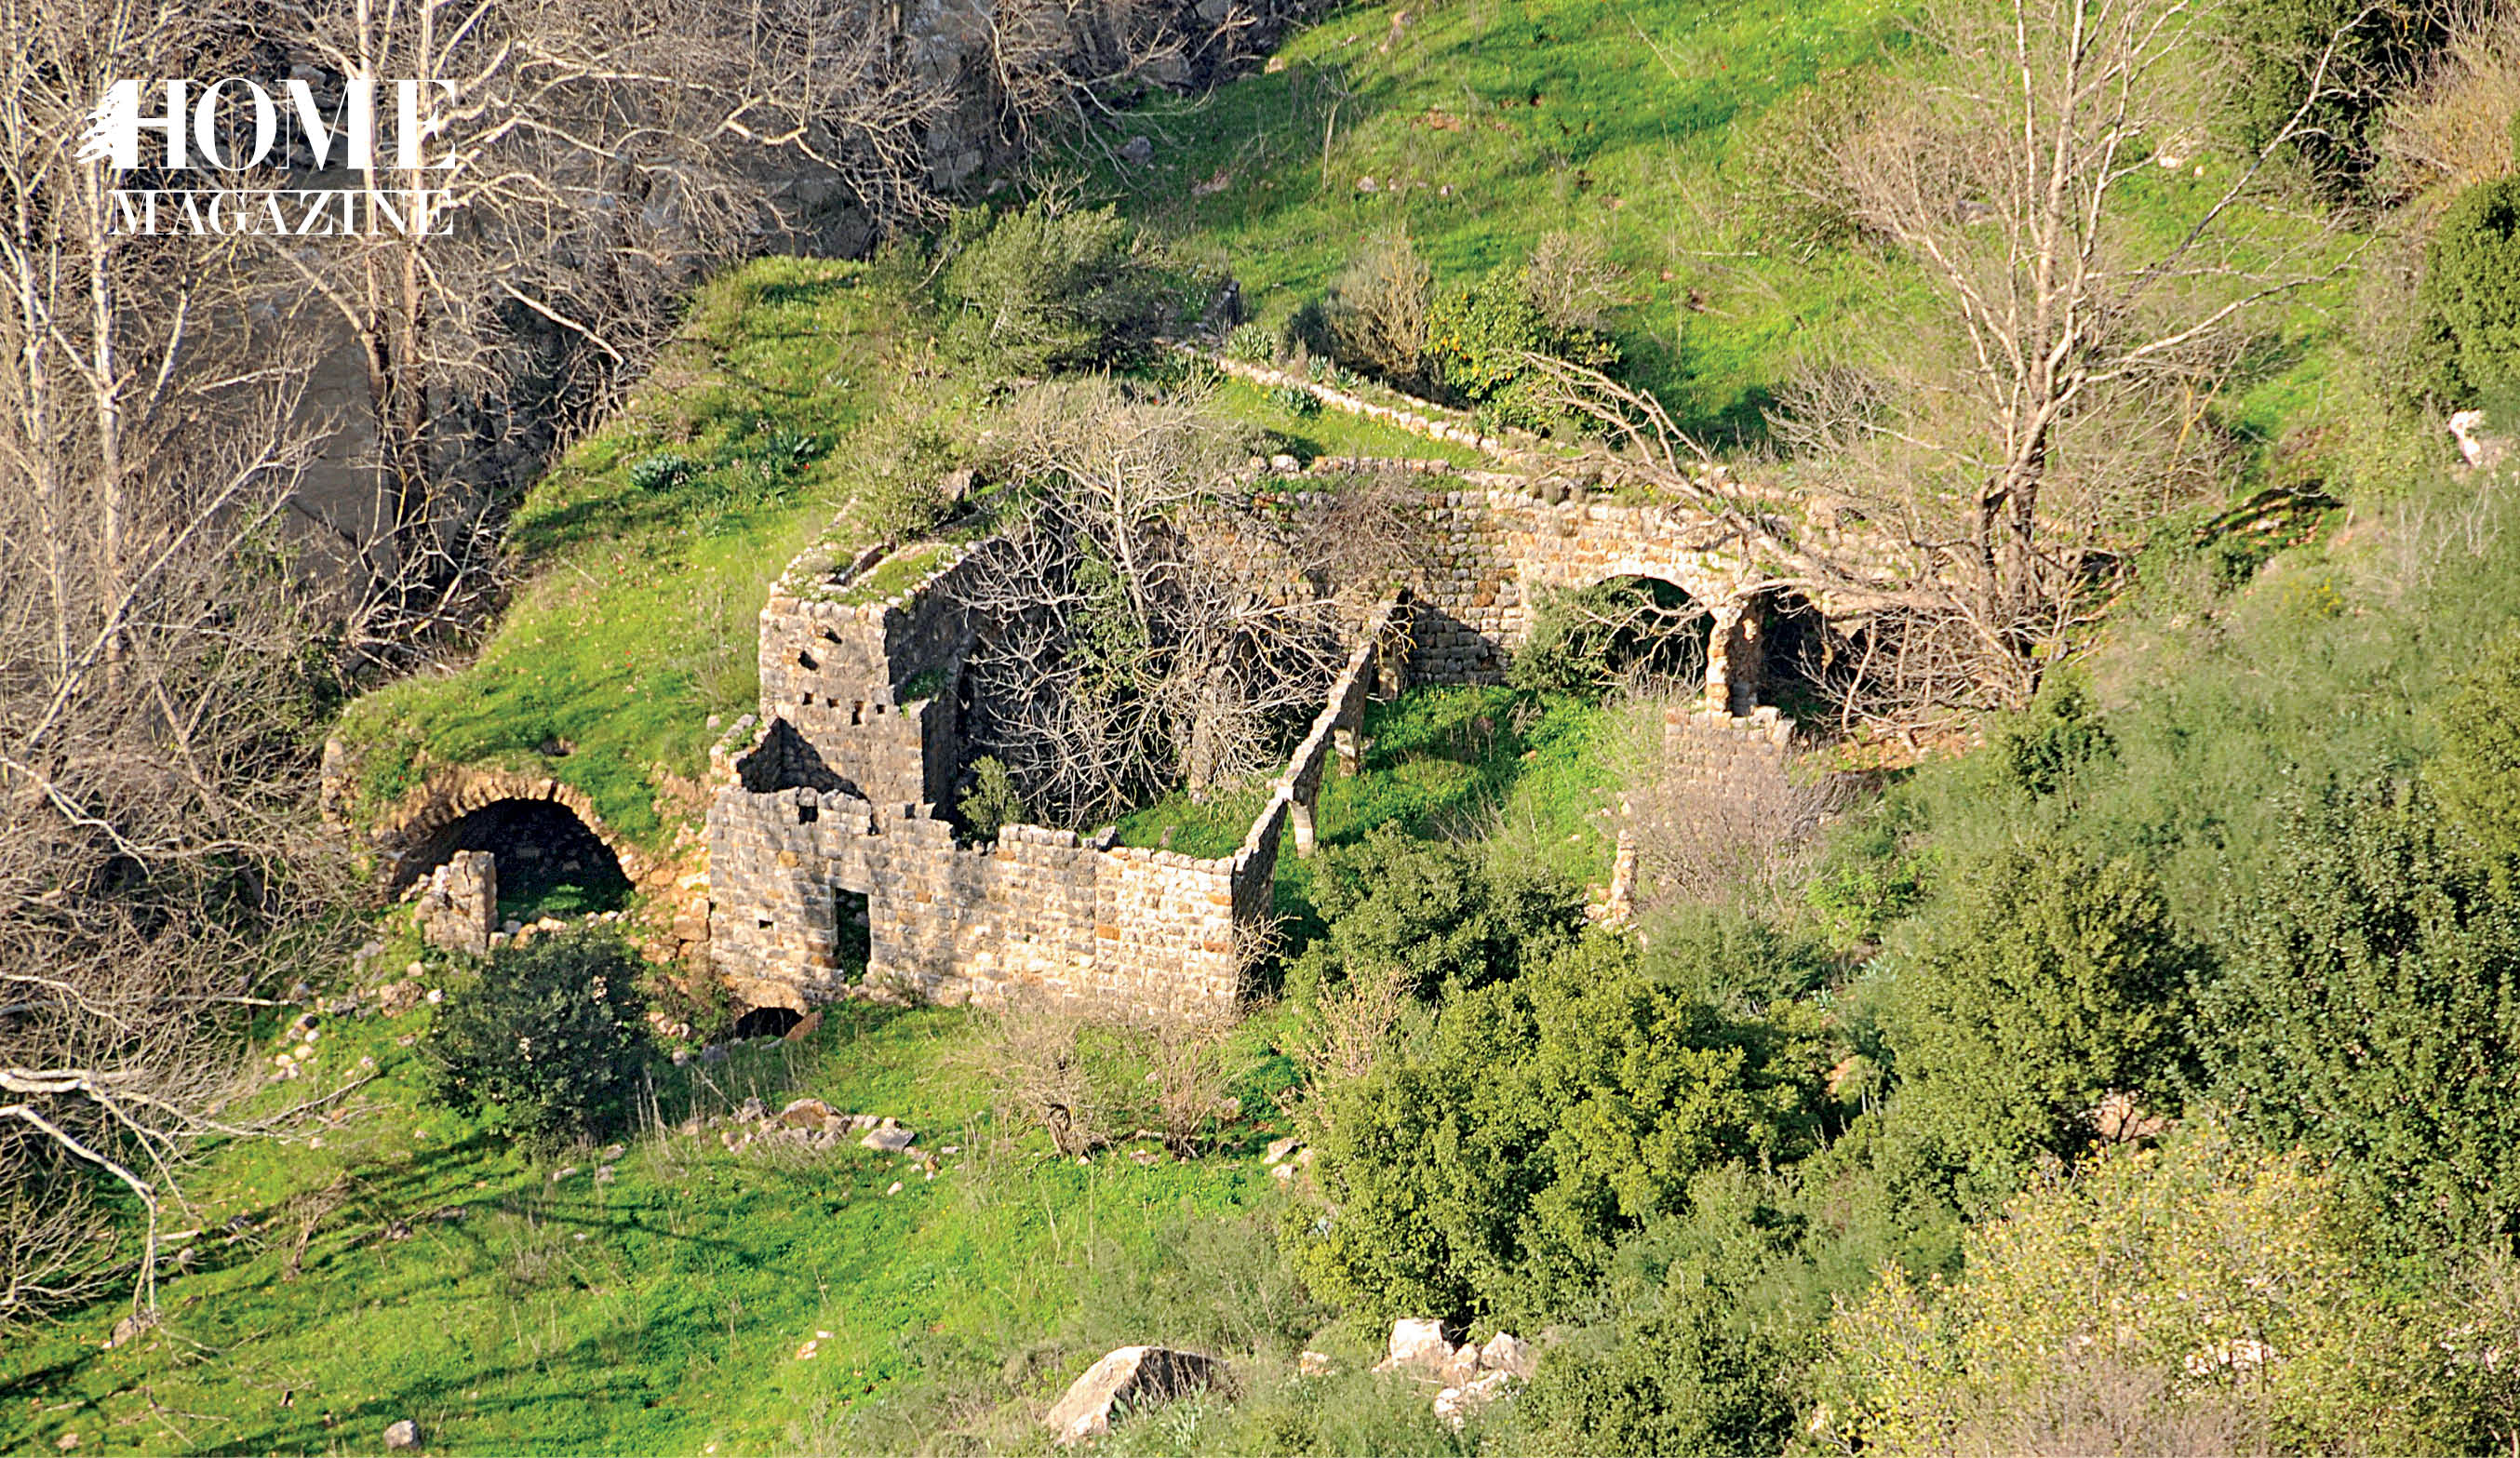 Green landscape with ruins of a rock house